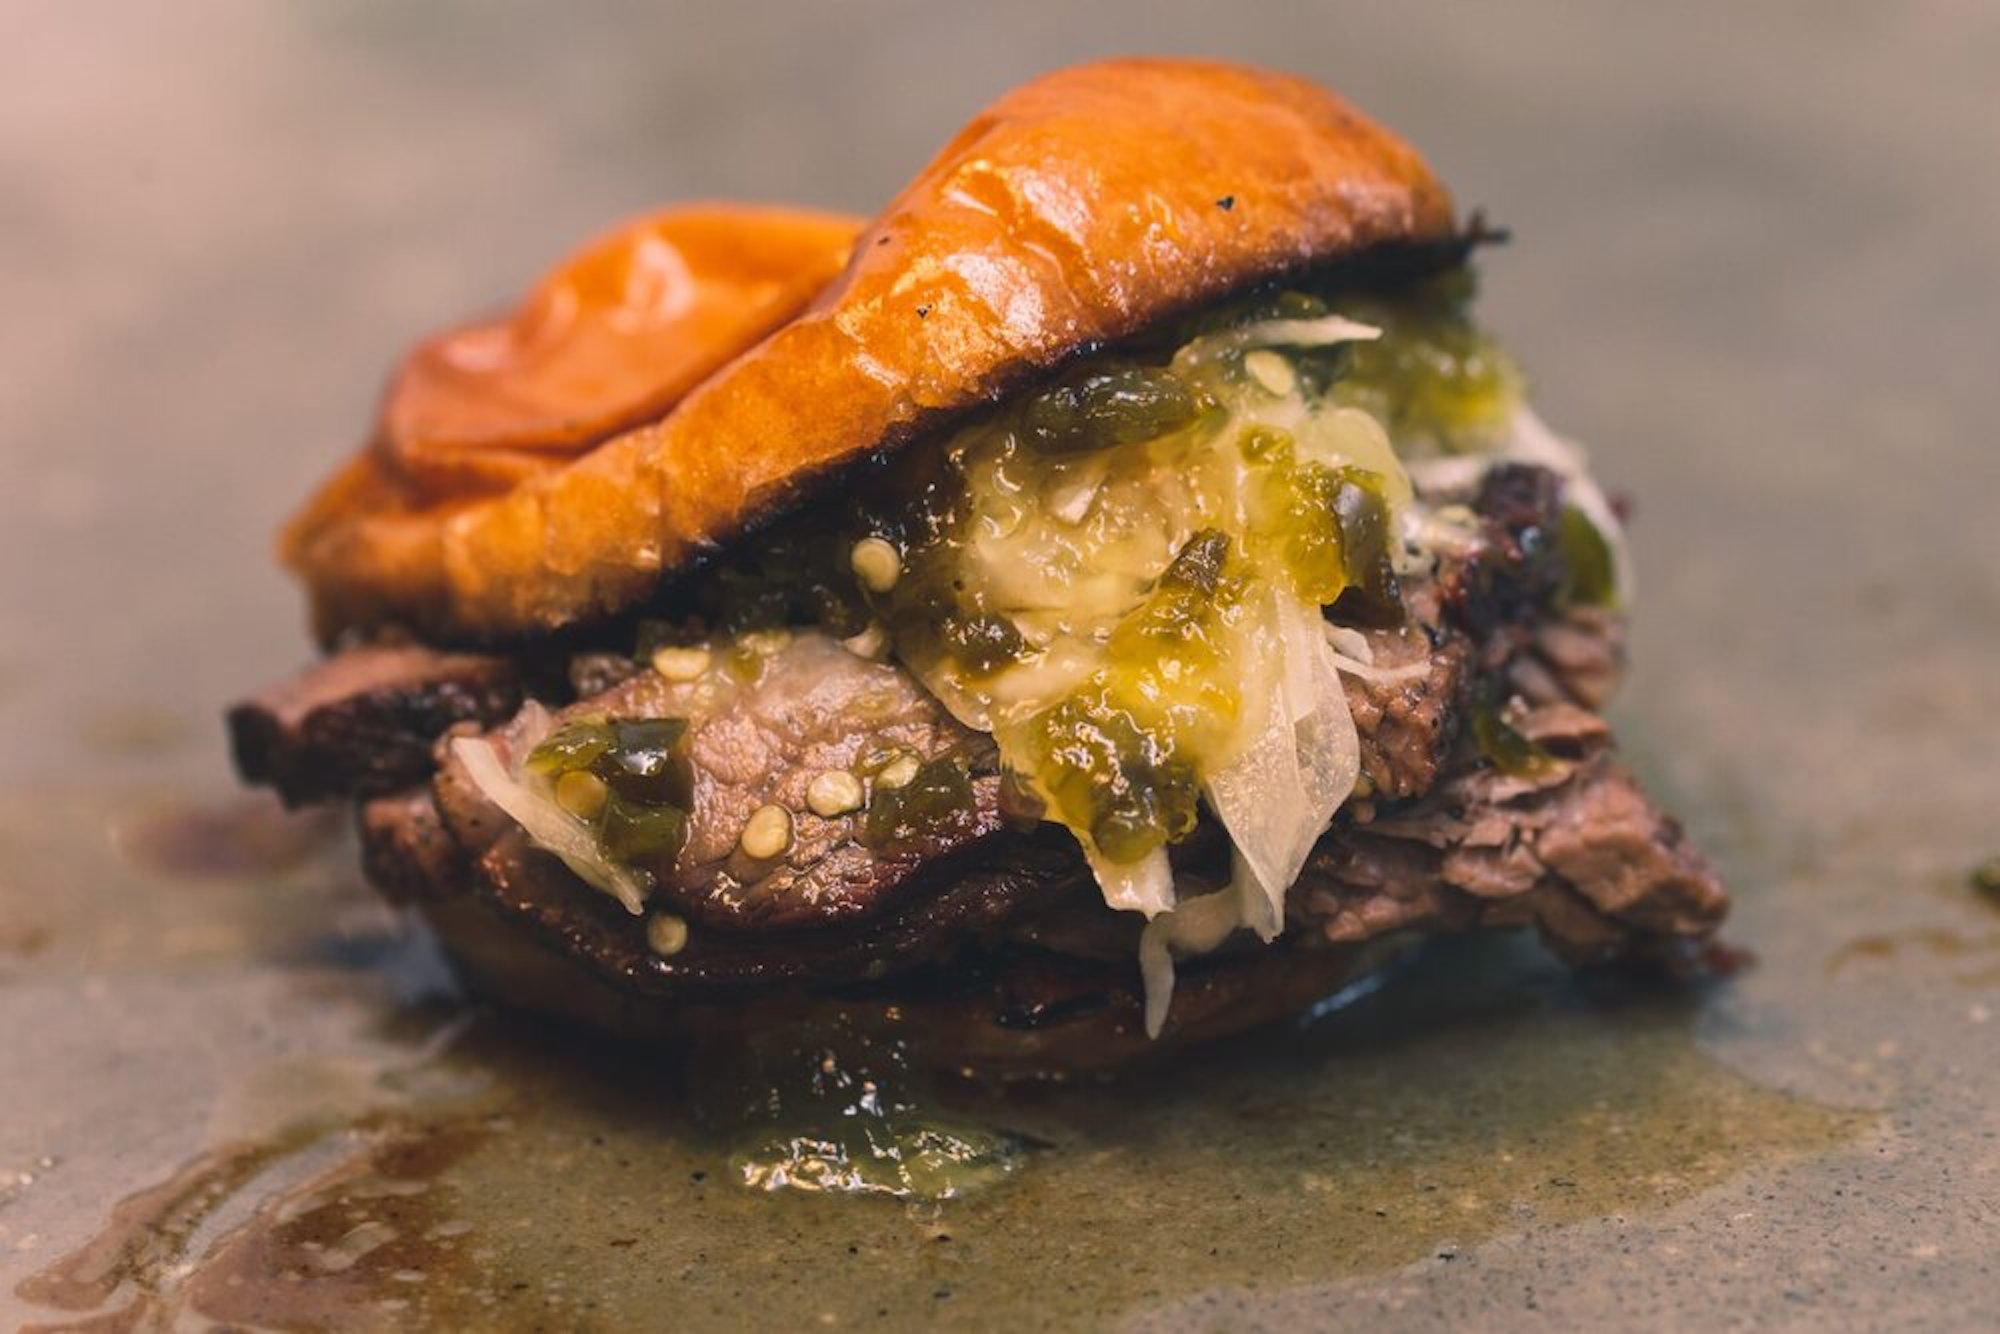 Takeaway barbecue brisket bun with meat, pickles, and cheese on a plancha grill